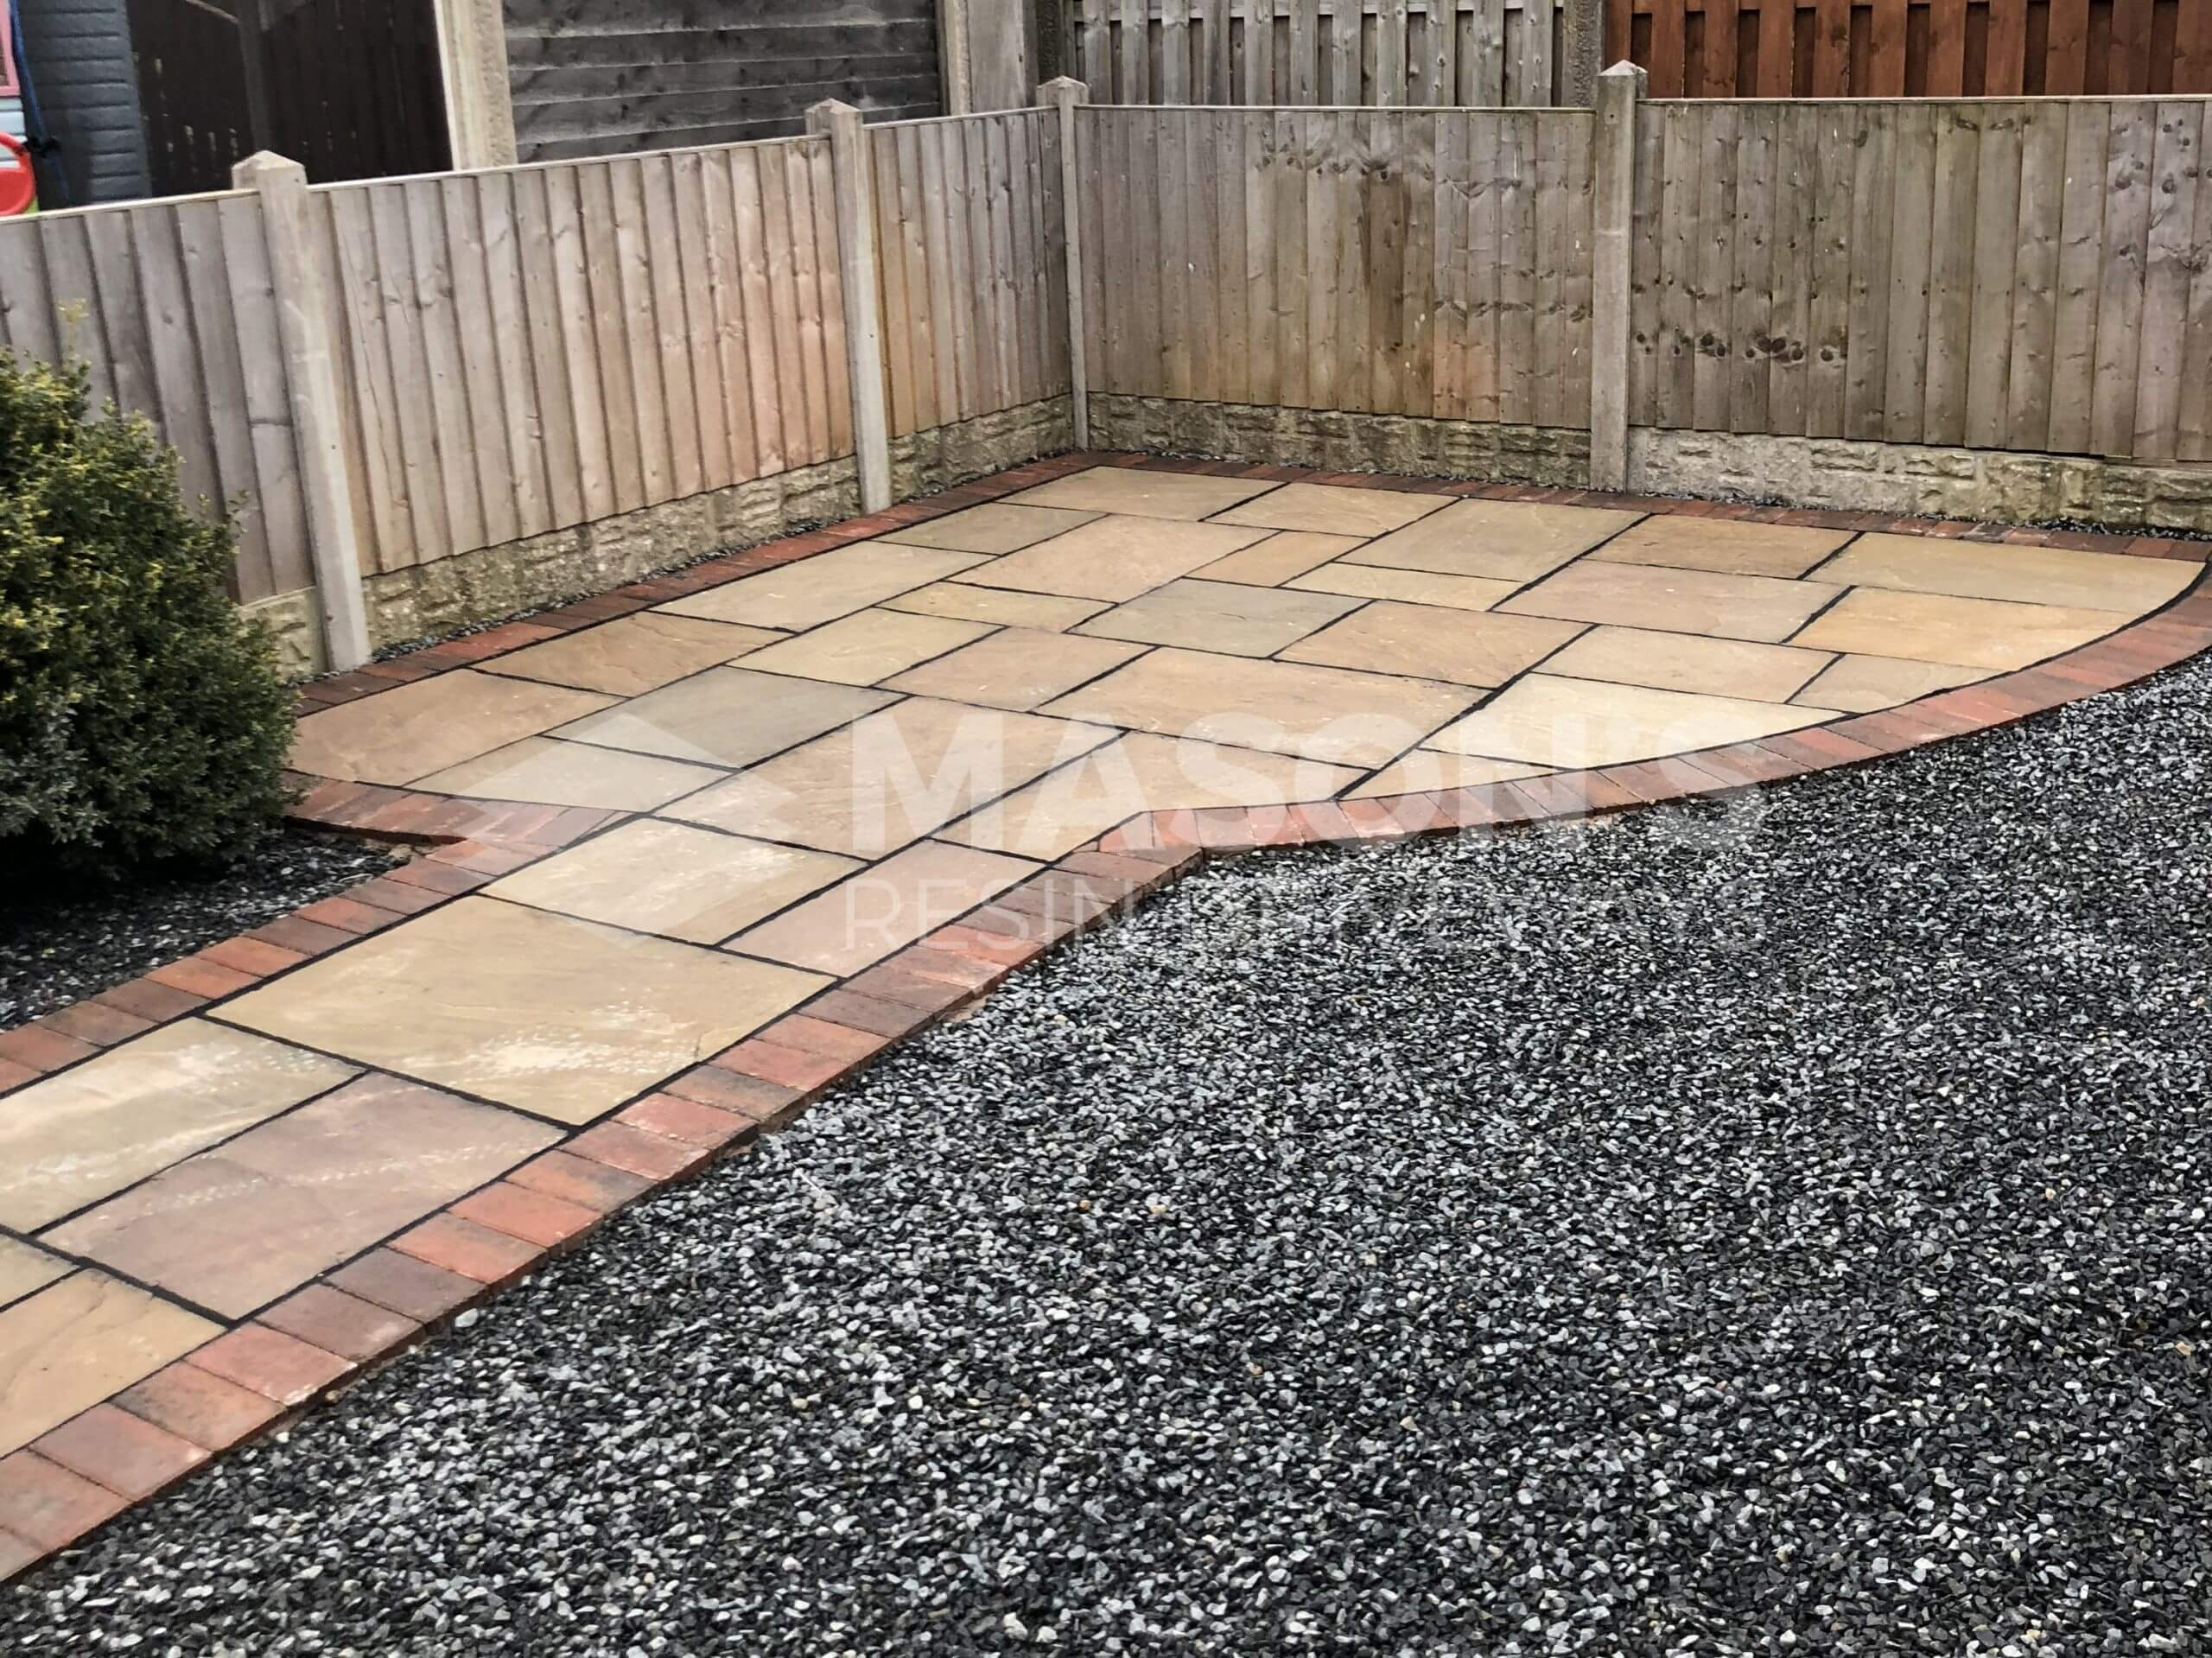 Indian Sandstone back garden with Tarmac Driveway in Preston, Lancashire